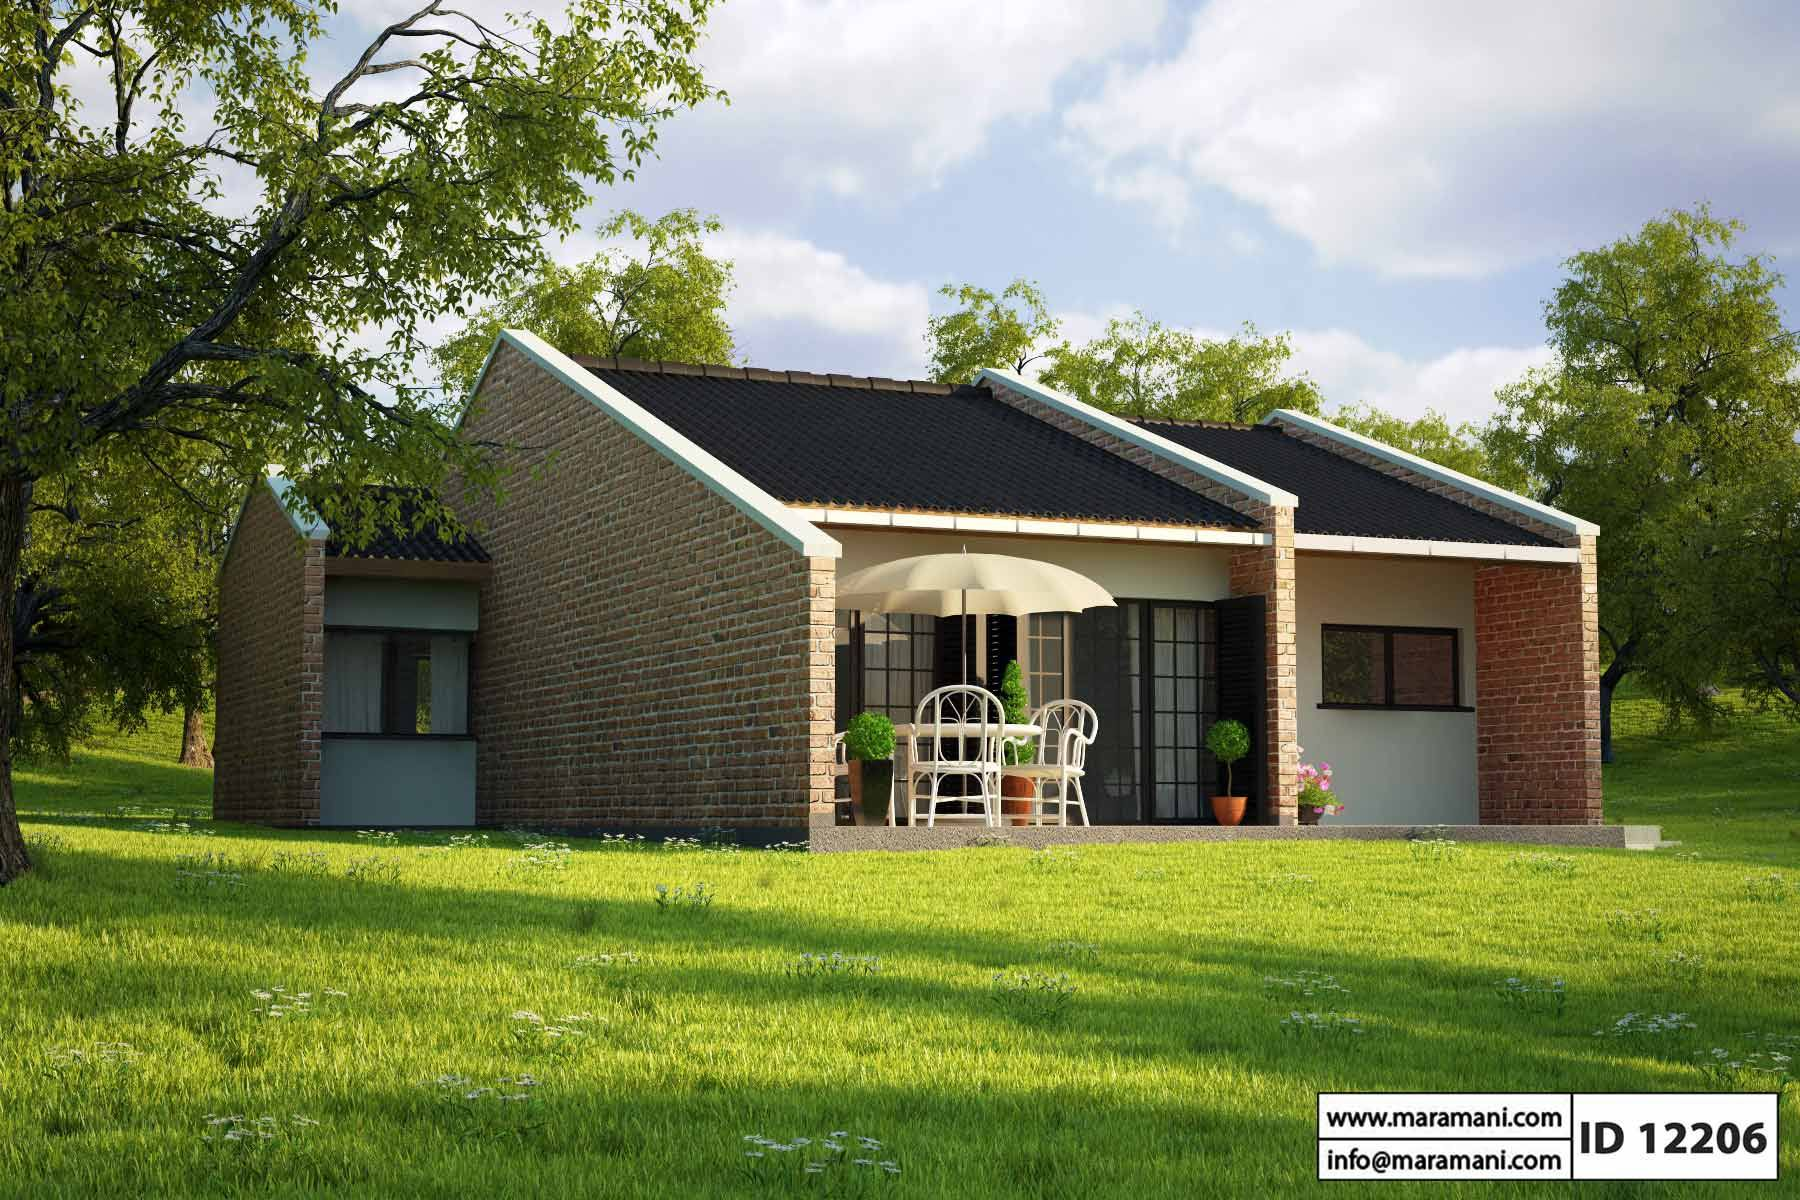 Small Brick House Design ID 12206 Plans By Maramani